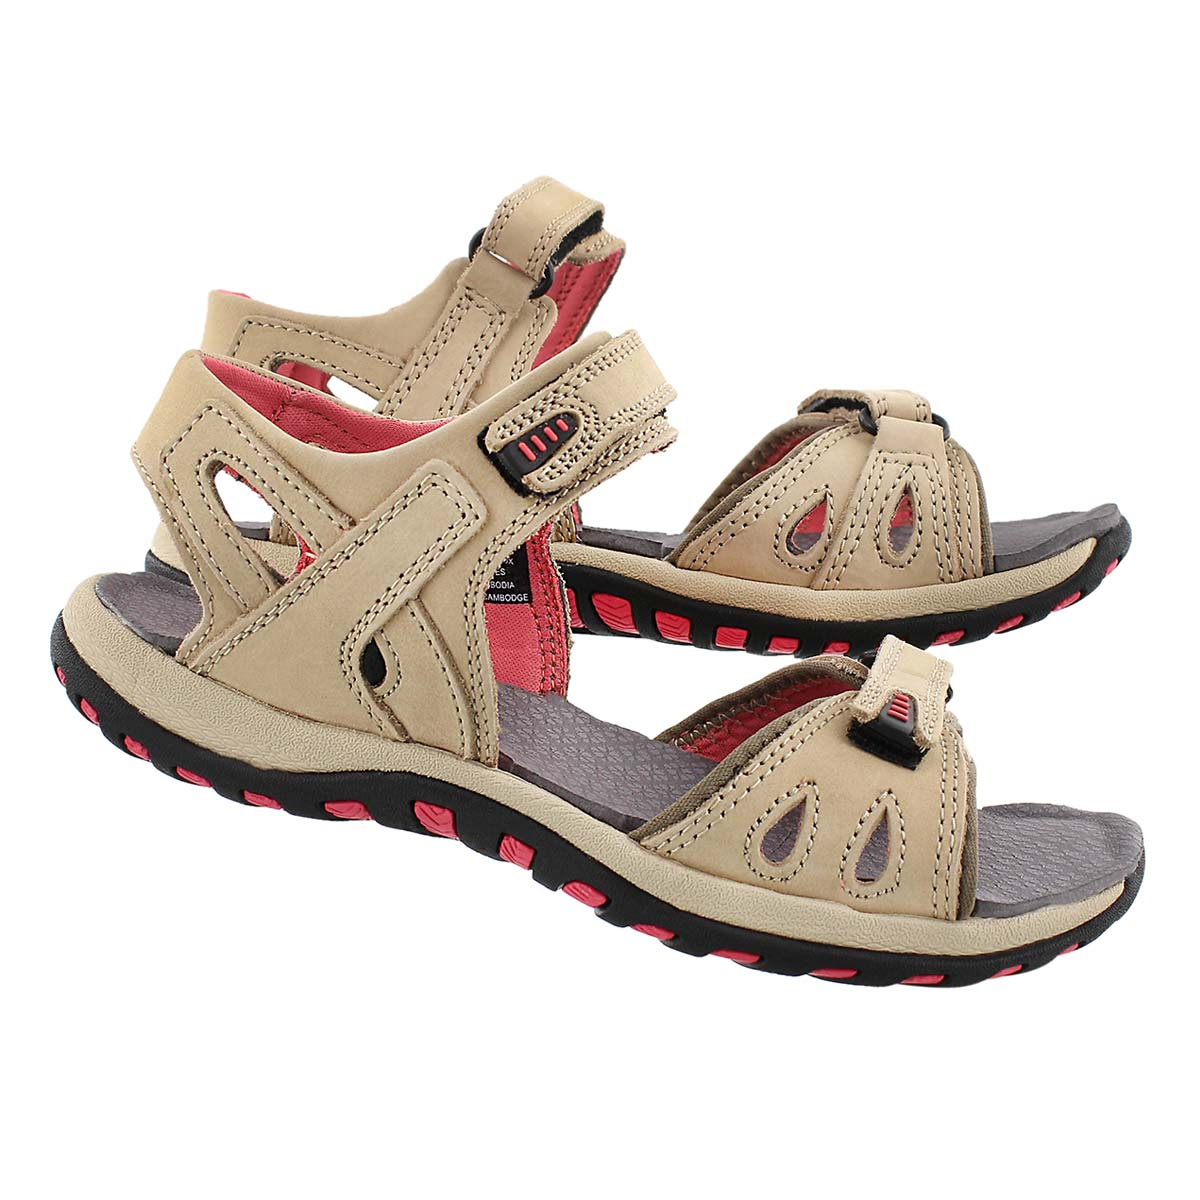 Sandale sport CALEY 2, taupe, femmes